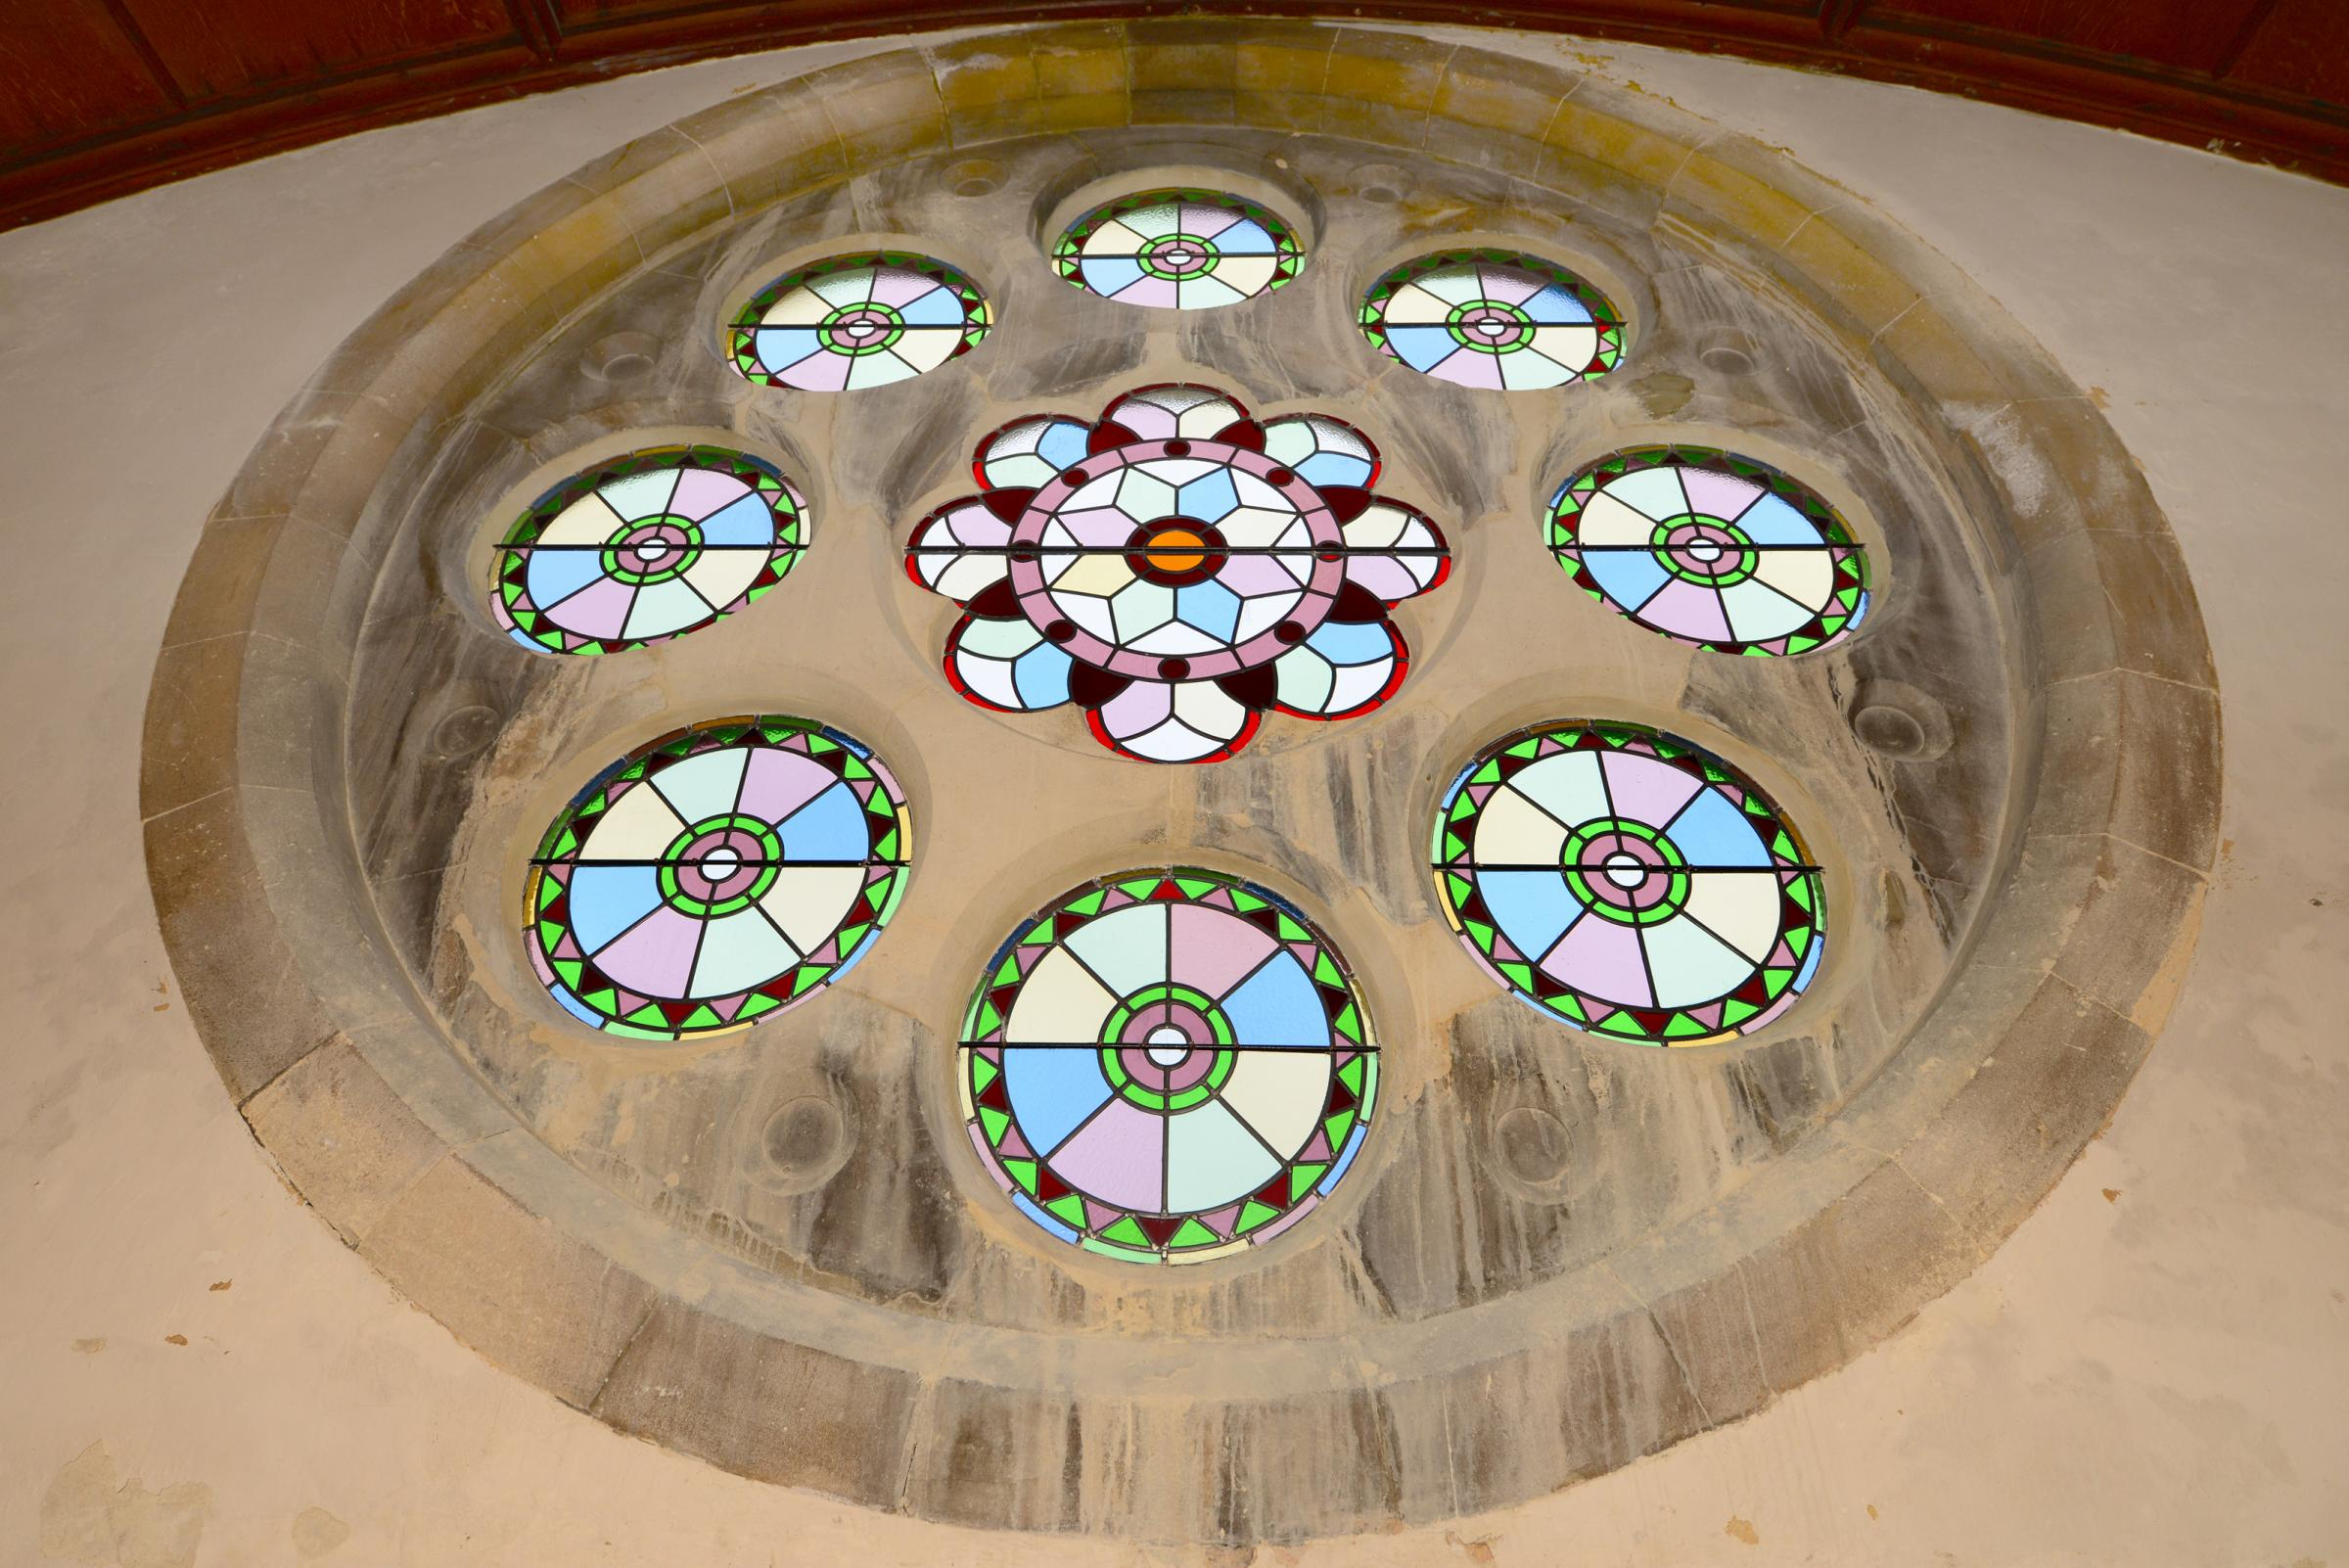 Church stained glass window revealed after restoration